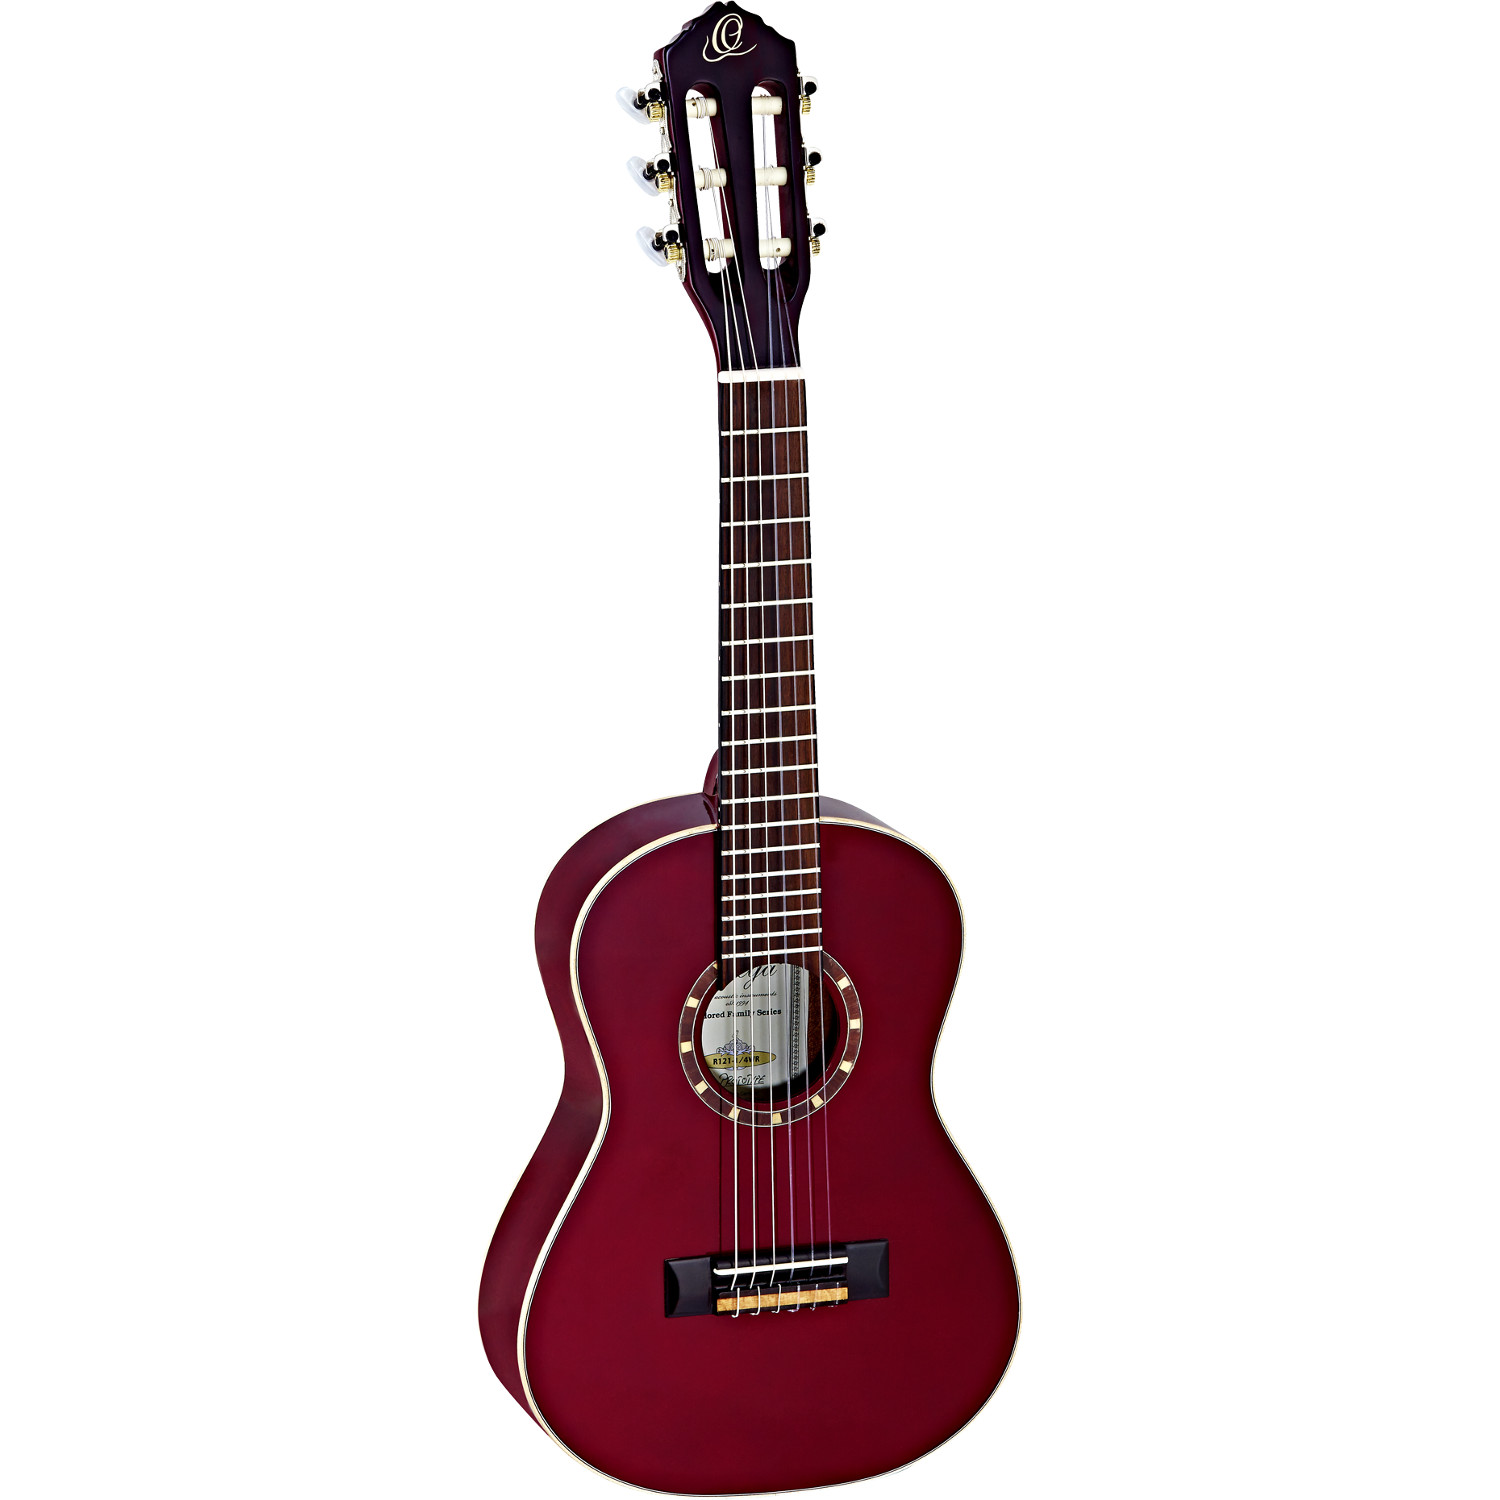 Ortega Family Series R121 1 4 wine red with gig bag